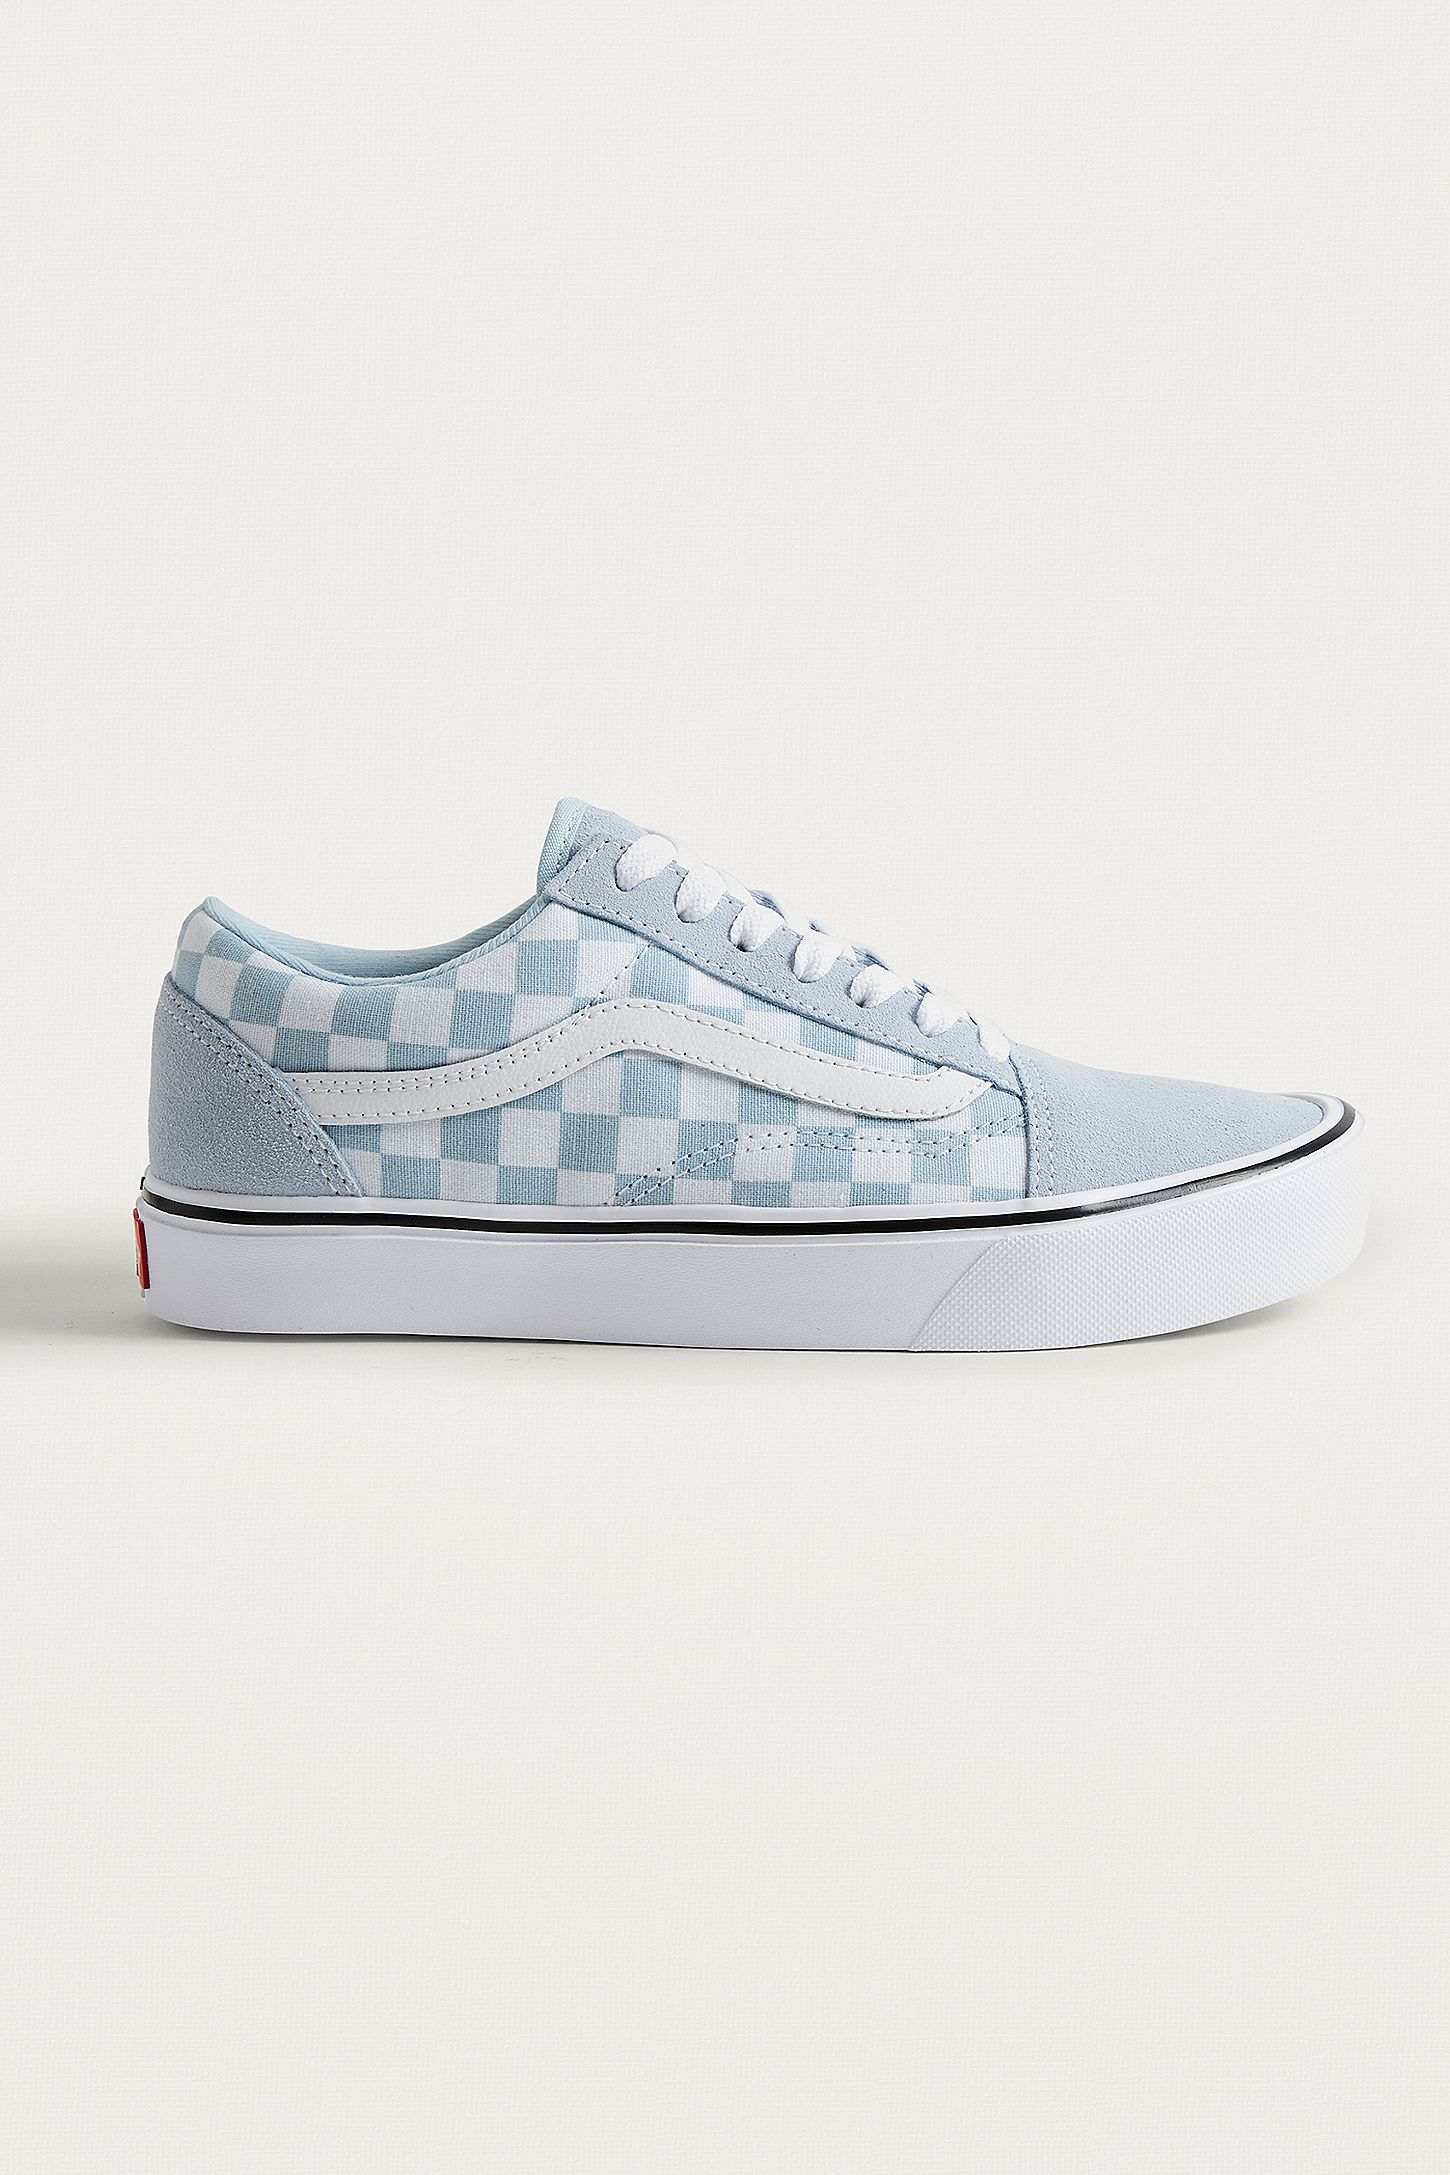 4a8cb90094 Vans Old Skool Light Blue Checkerboard Trainers